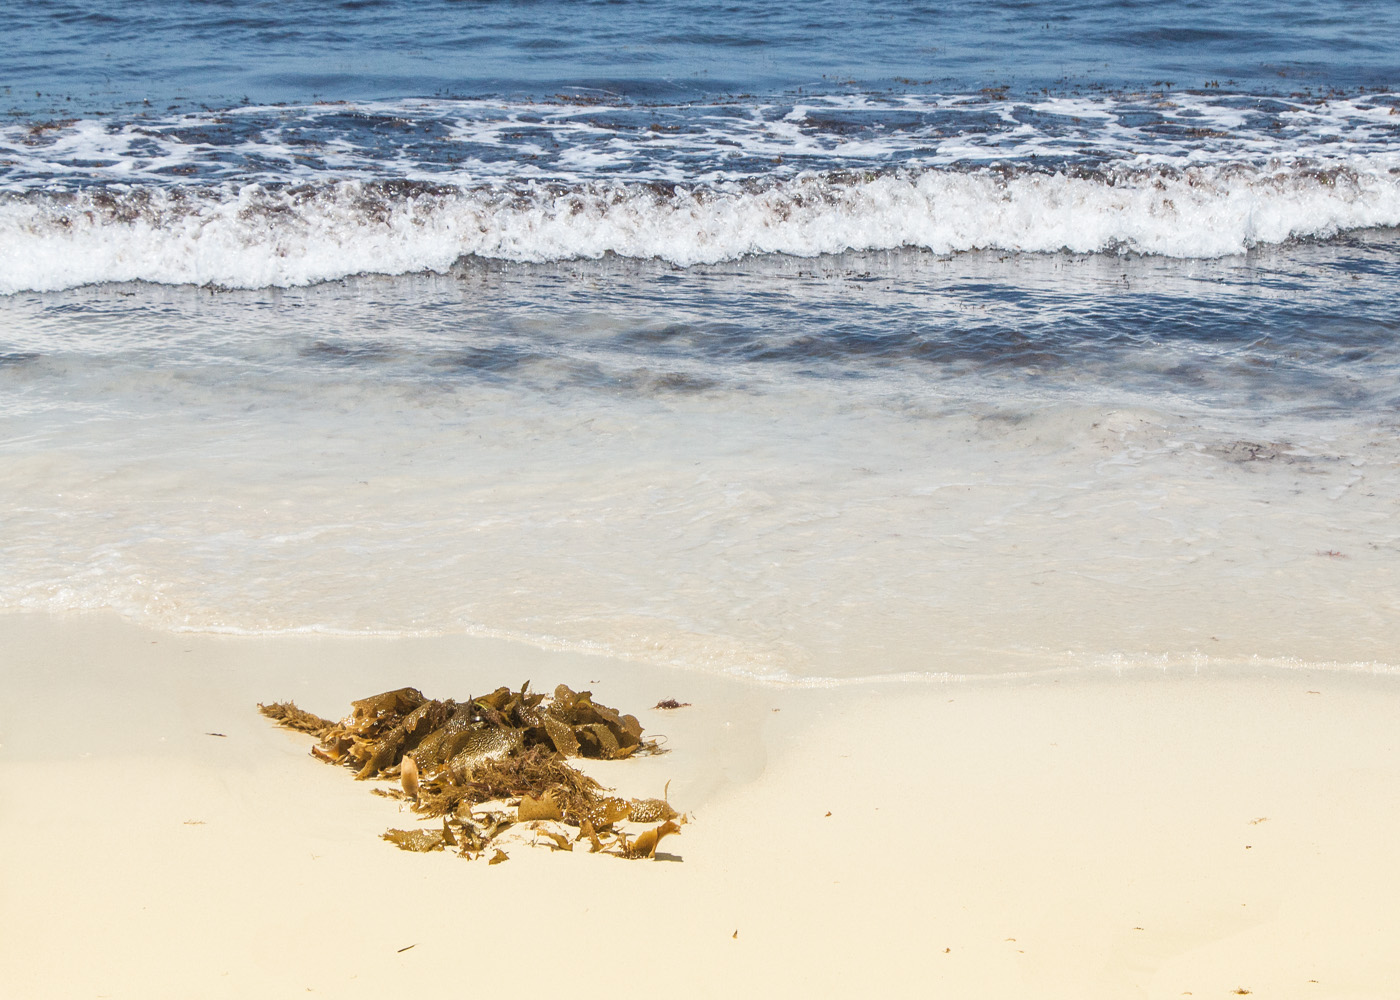 ROCKS SEAWEED by Don Dobson